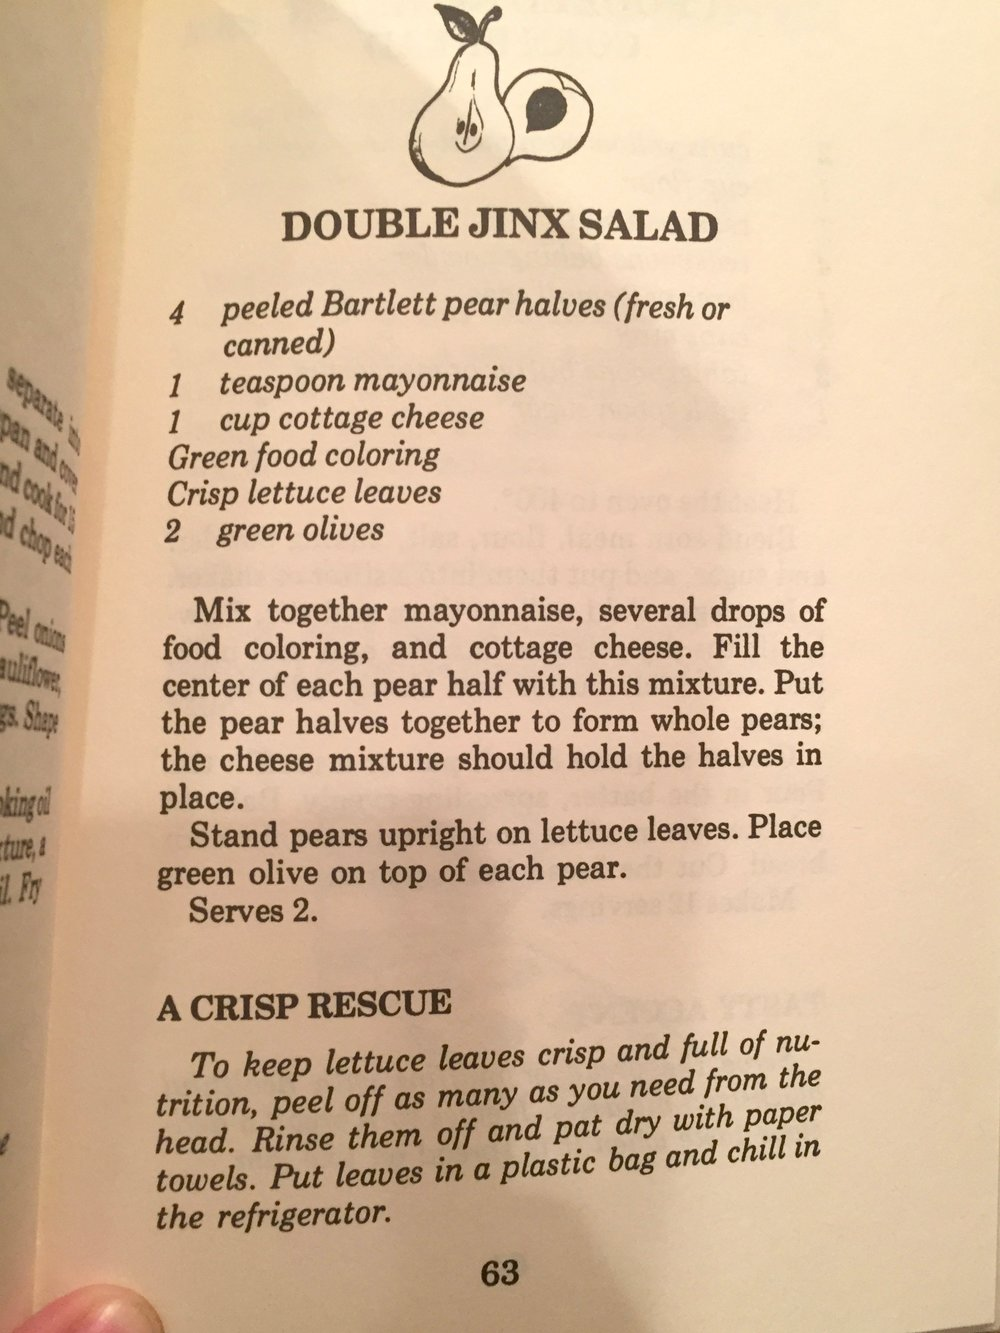 Horrifying salad from The Nancy Drew Cookbook